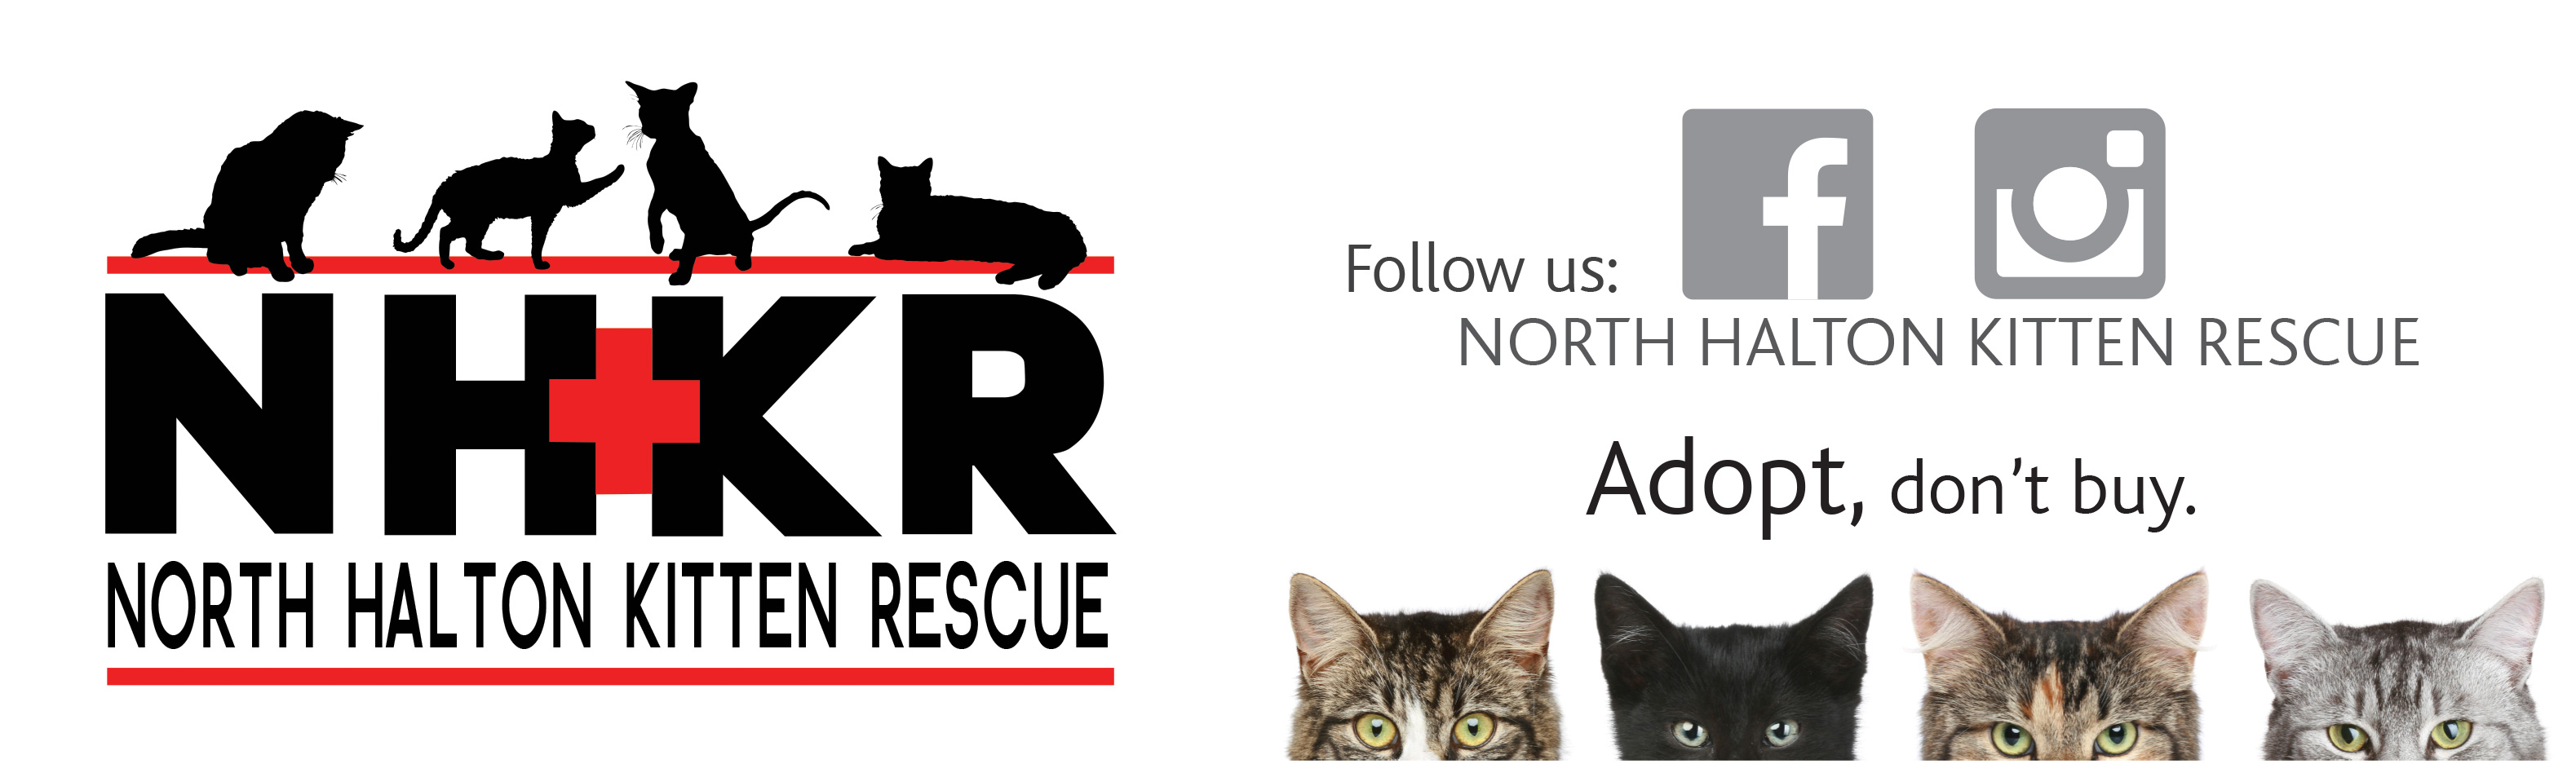 North Halton Kitten Rescue